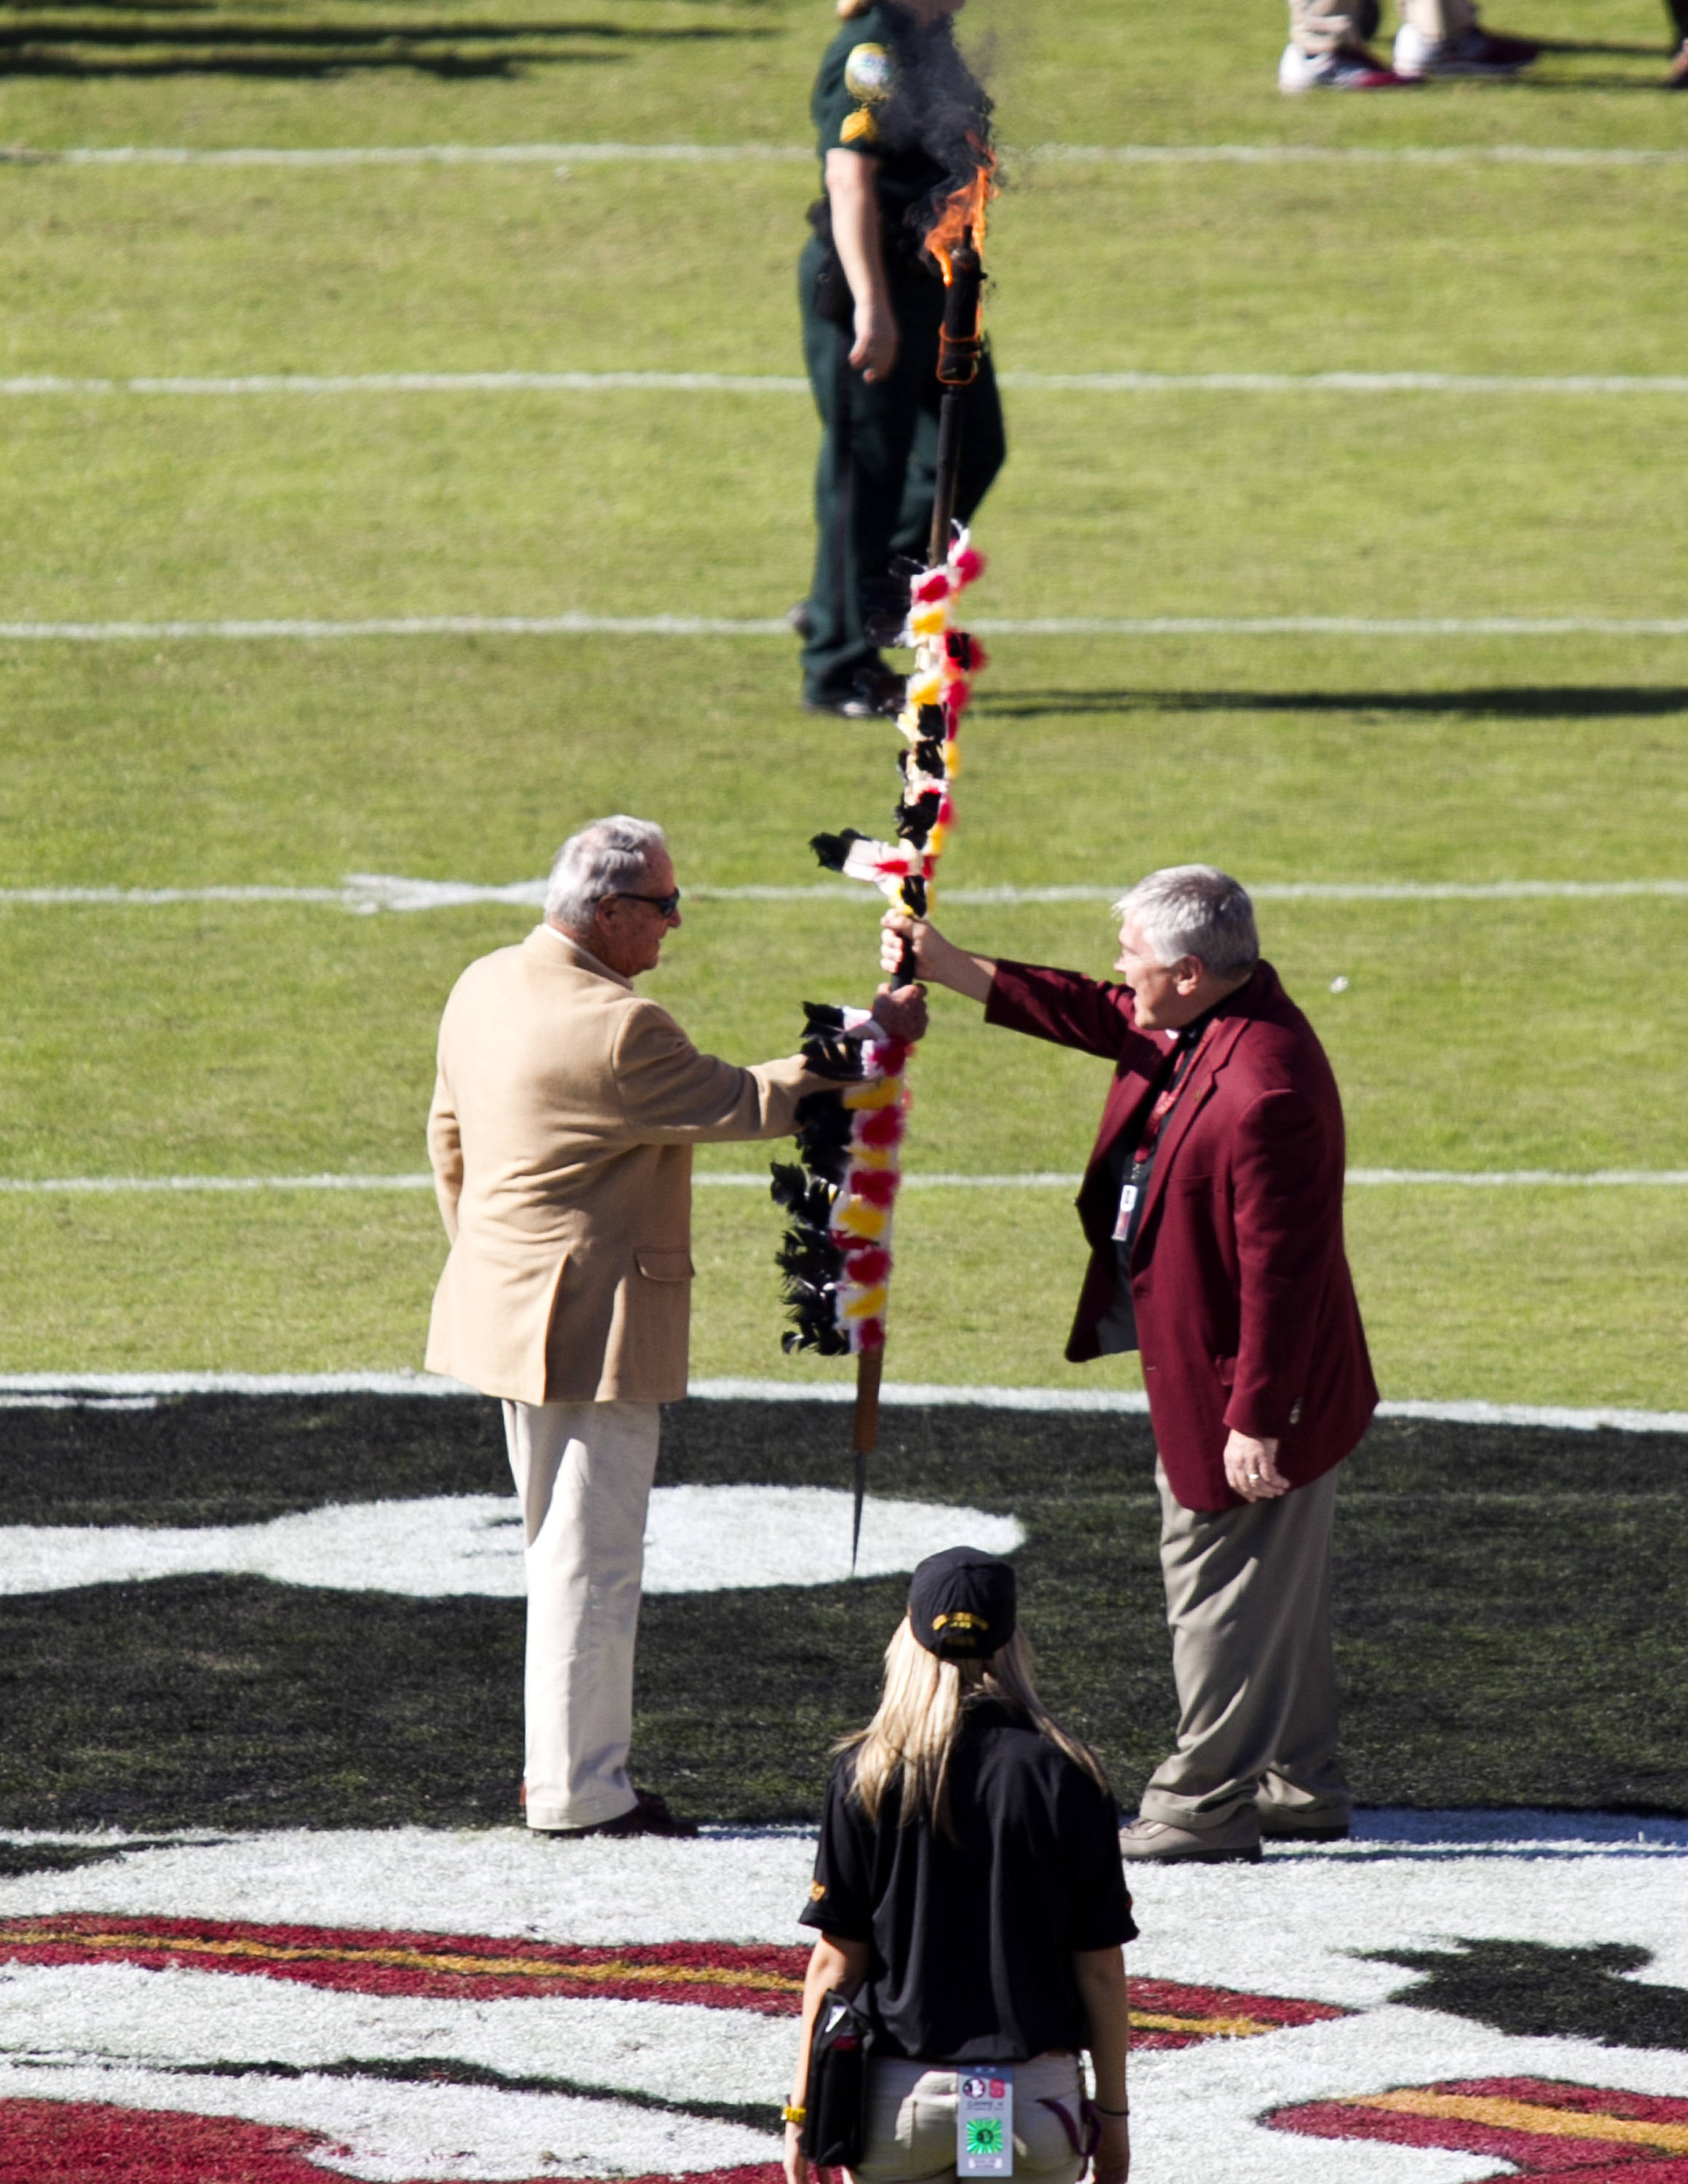 President Barron handing the spear to Coach Bowden, FSU vs NC State,  10-26-13, (Photo by Steve Musco)